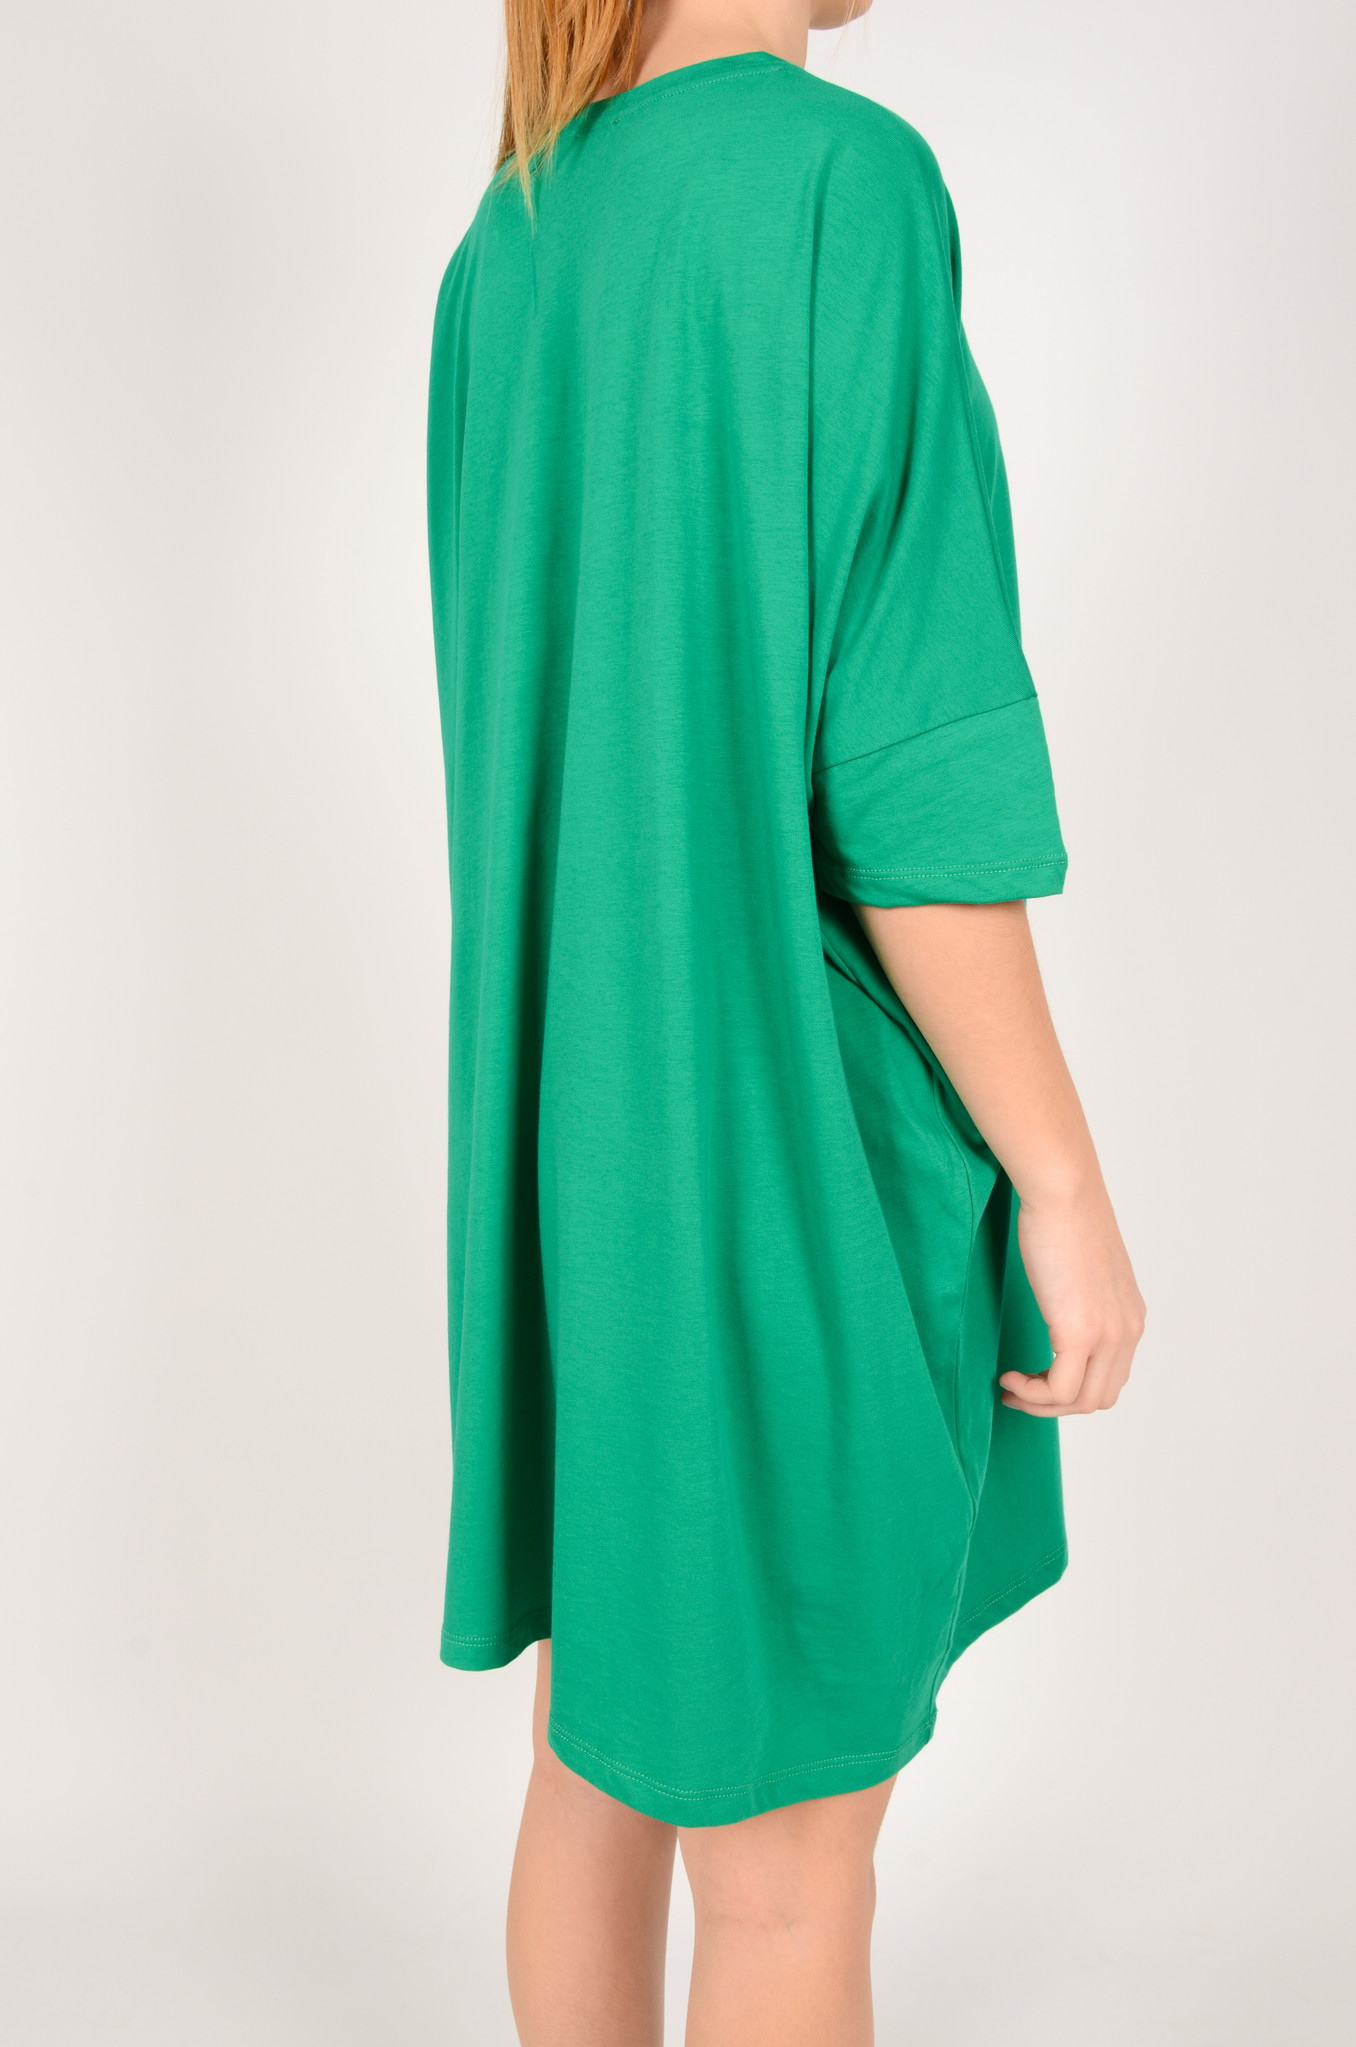 T-DRESS IN GREEN-4